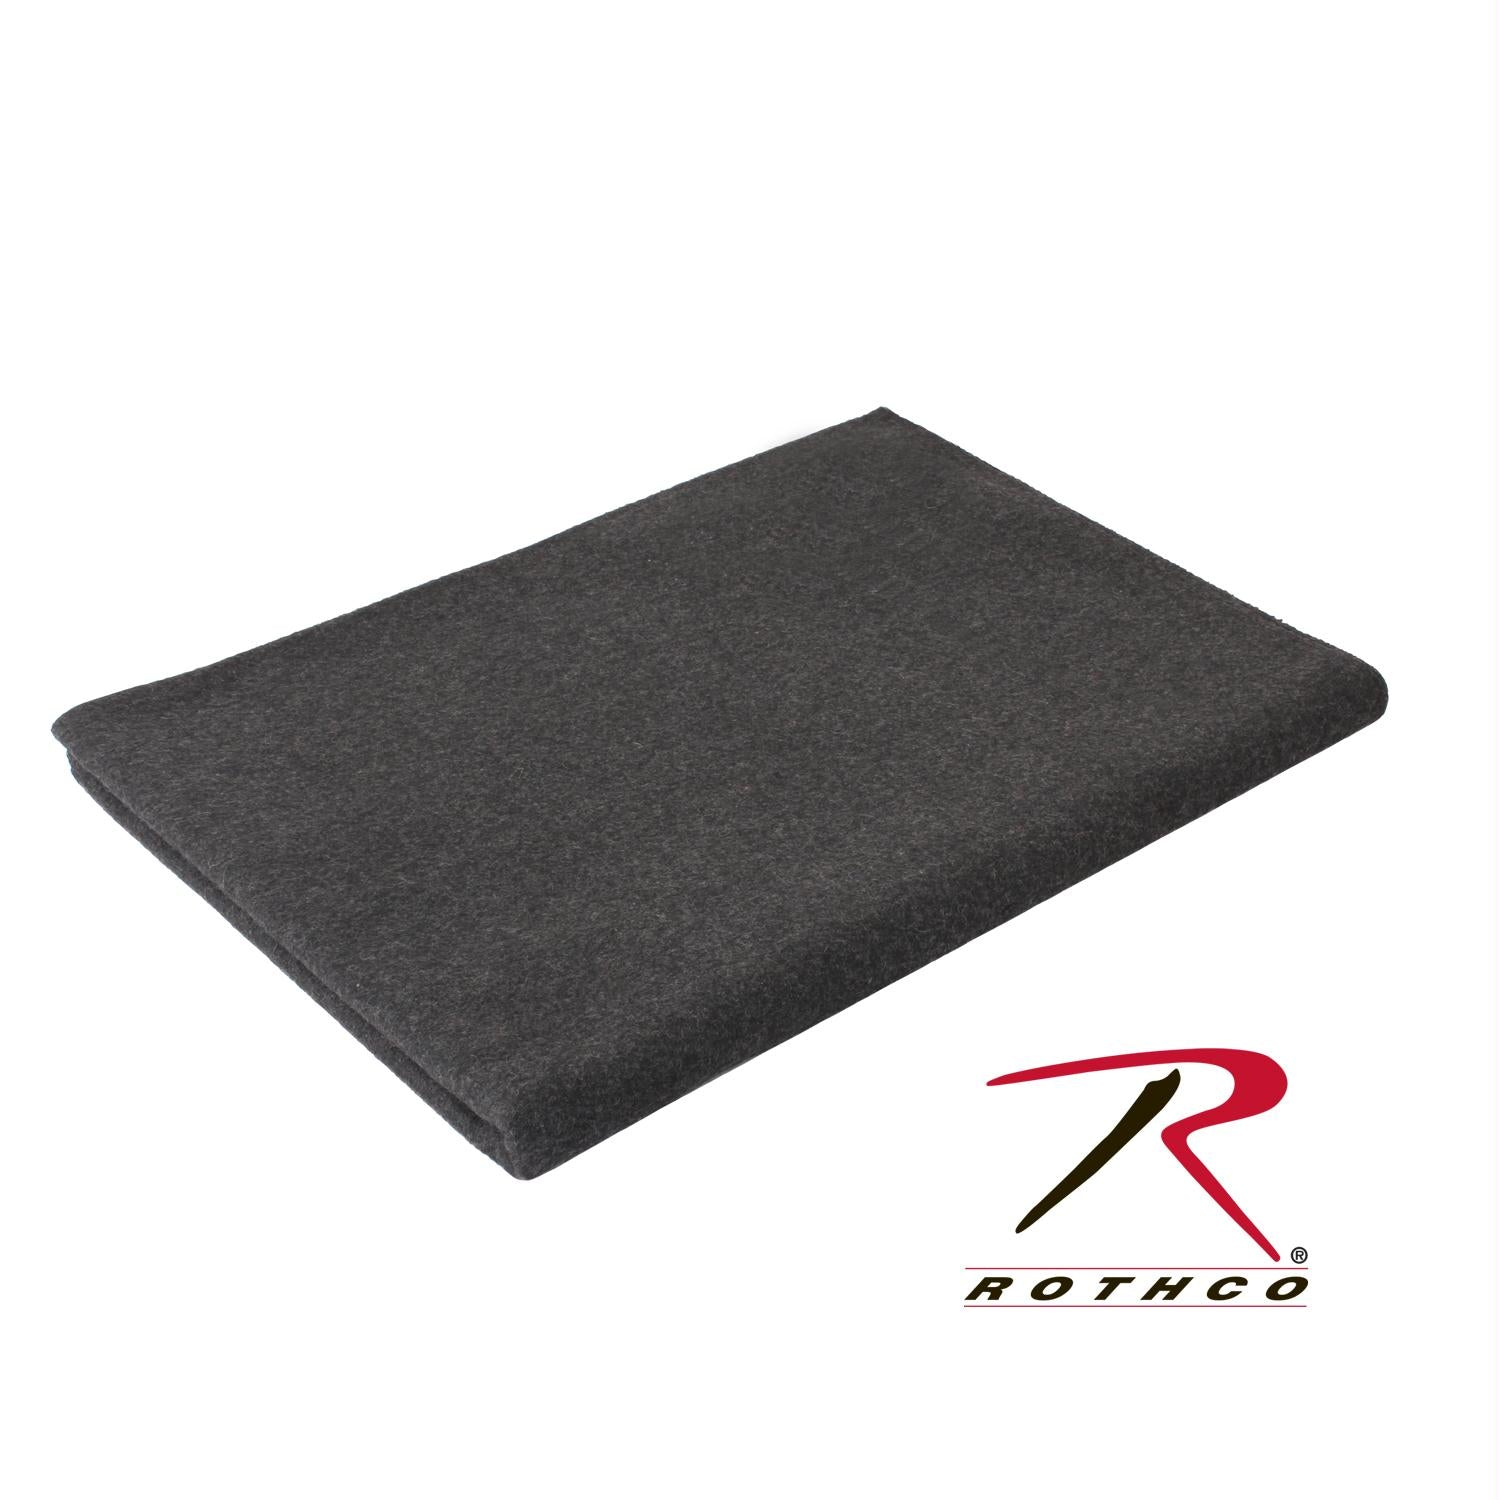 Rothco Wool Blanket - Grey / 62